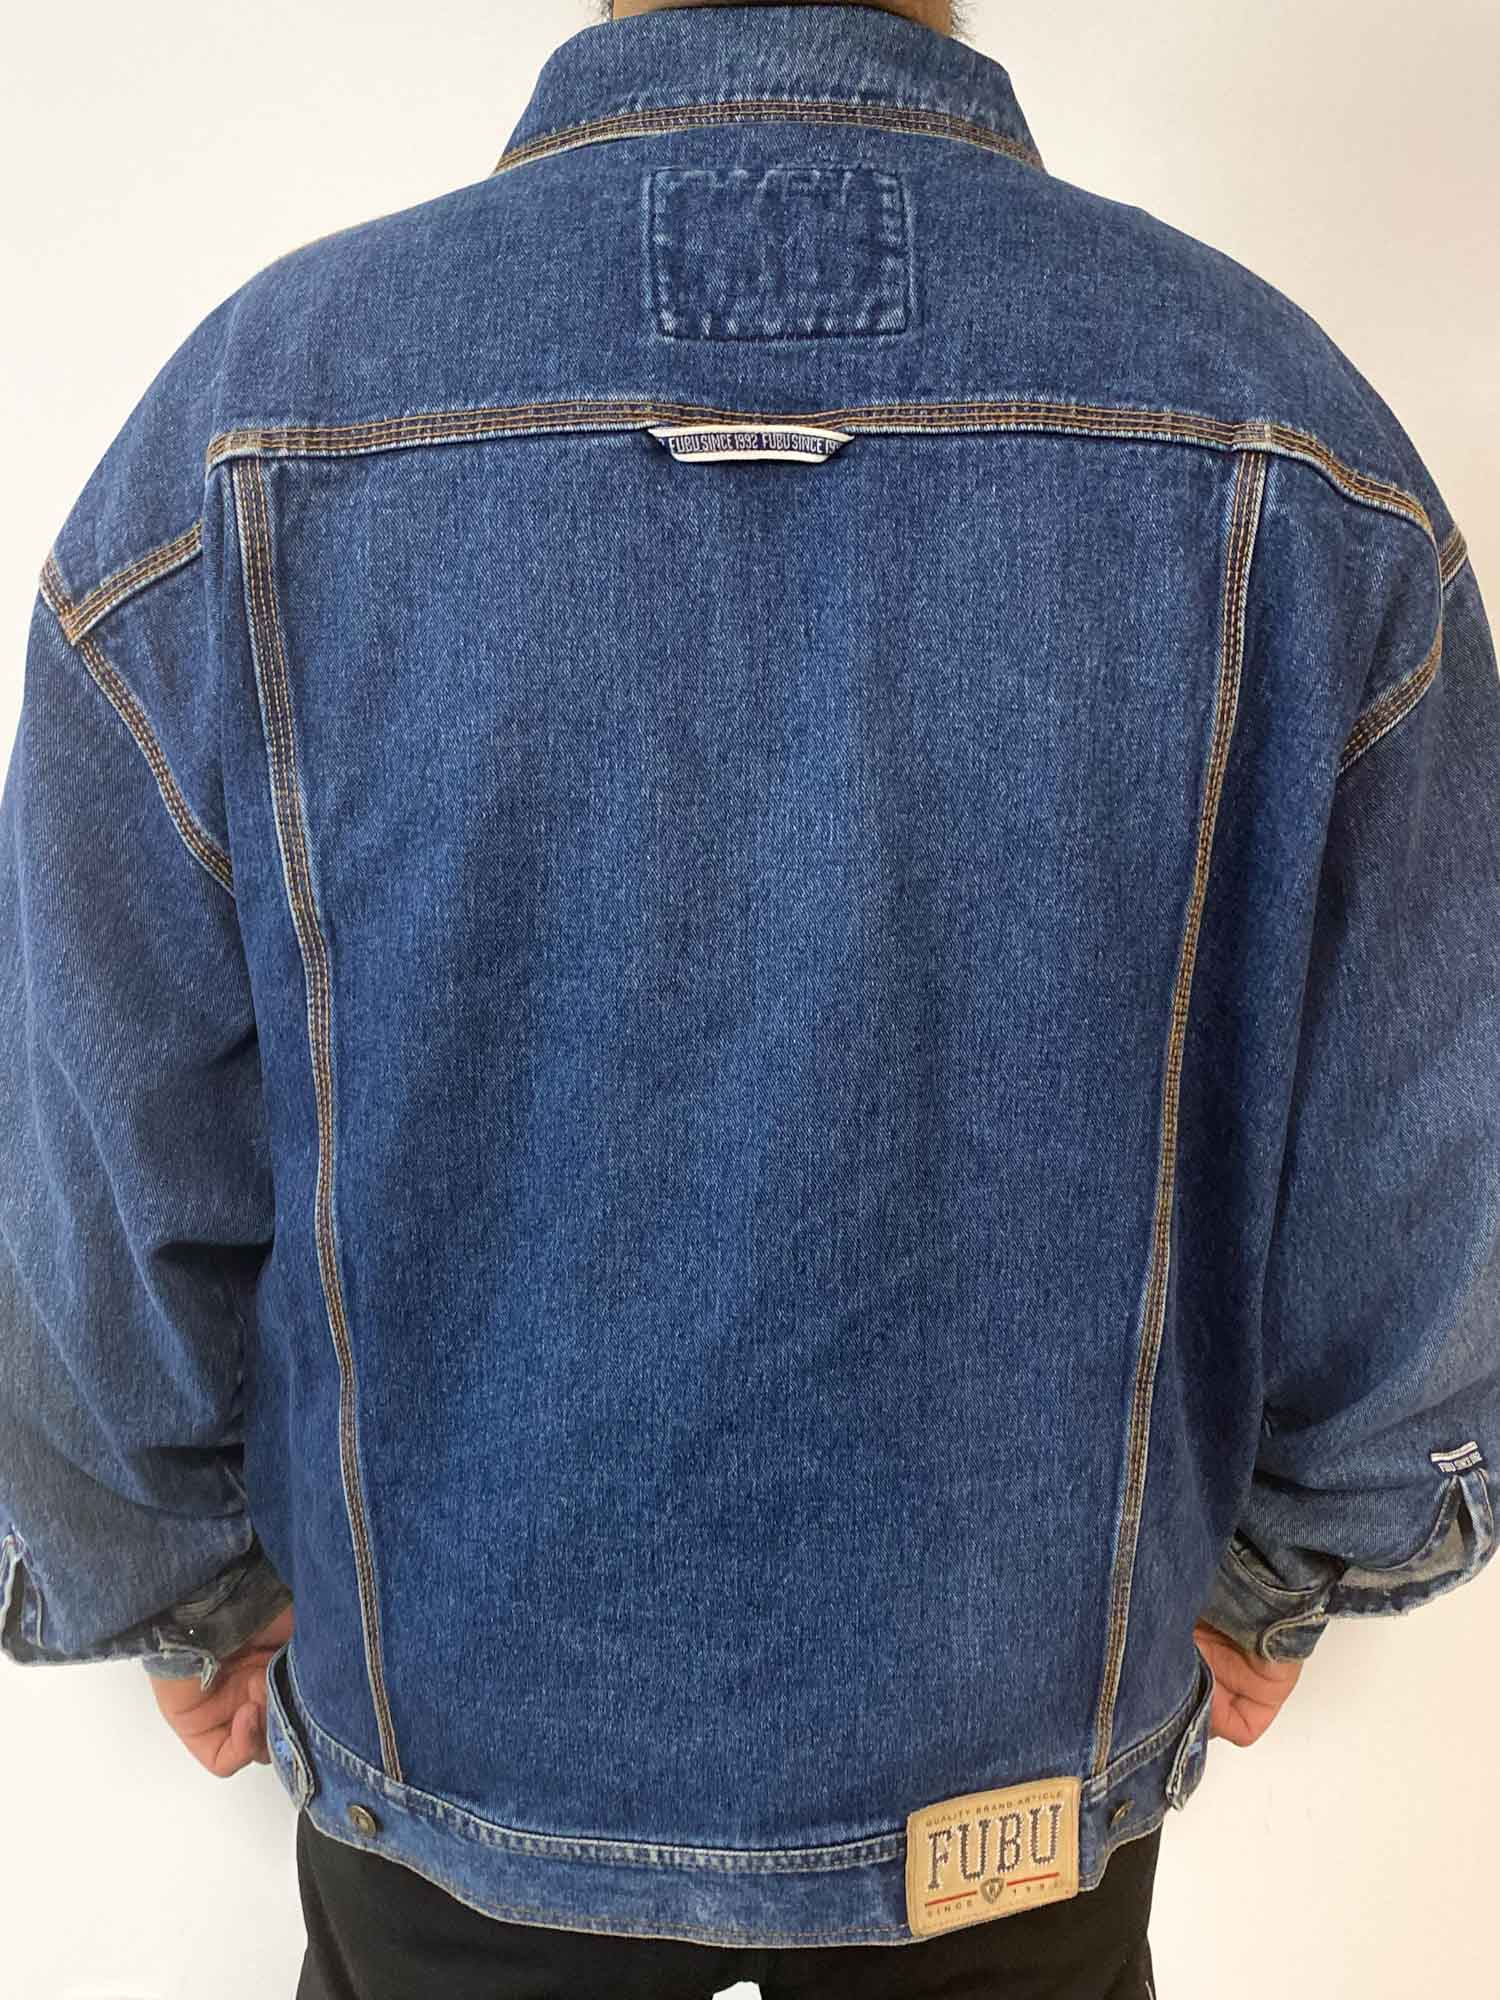 FUBU Denim Jacket